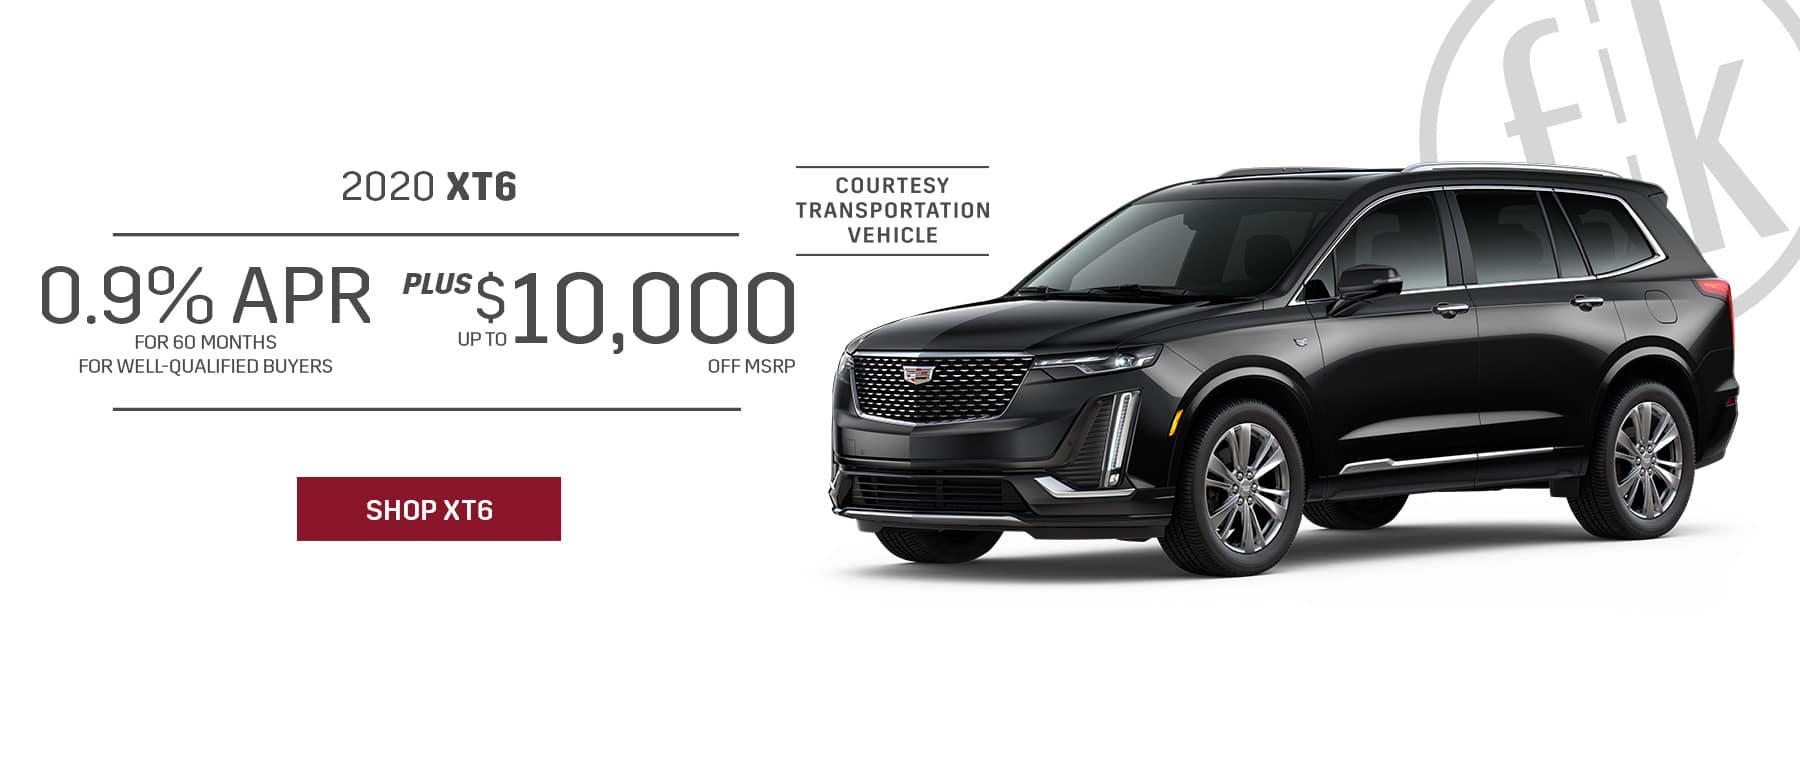 0.9% for 60 mos. PLUS Up To $10,000 Off 2020 XT6 Demo